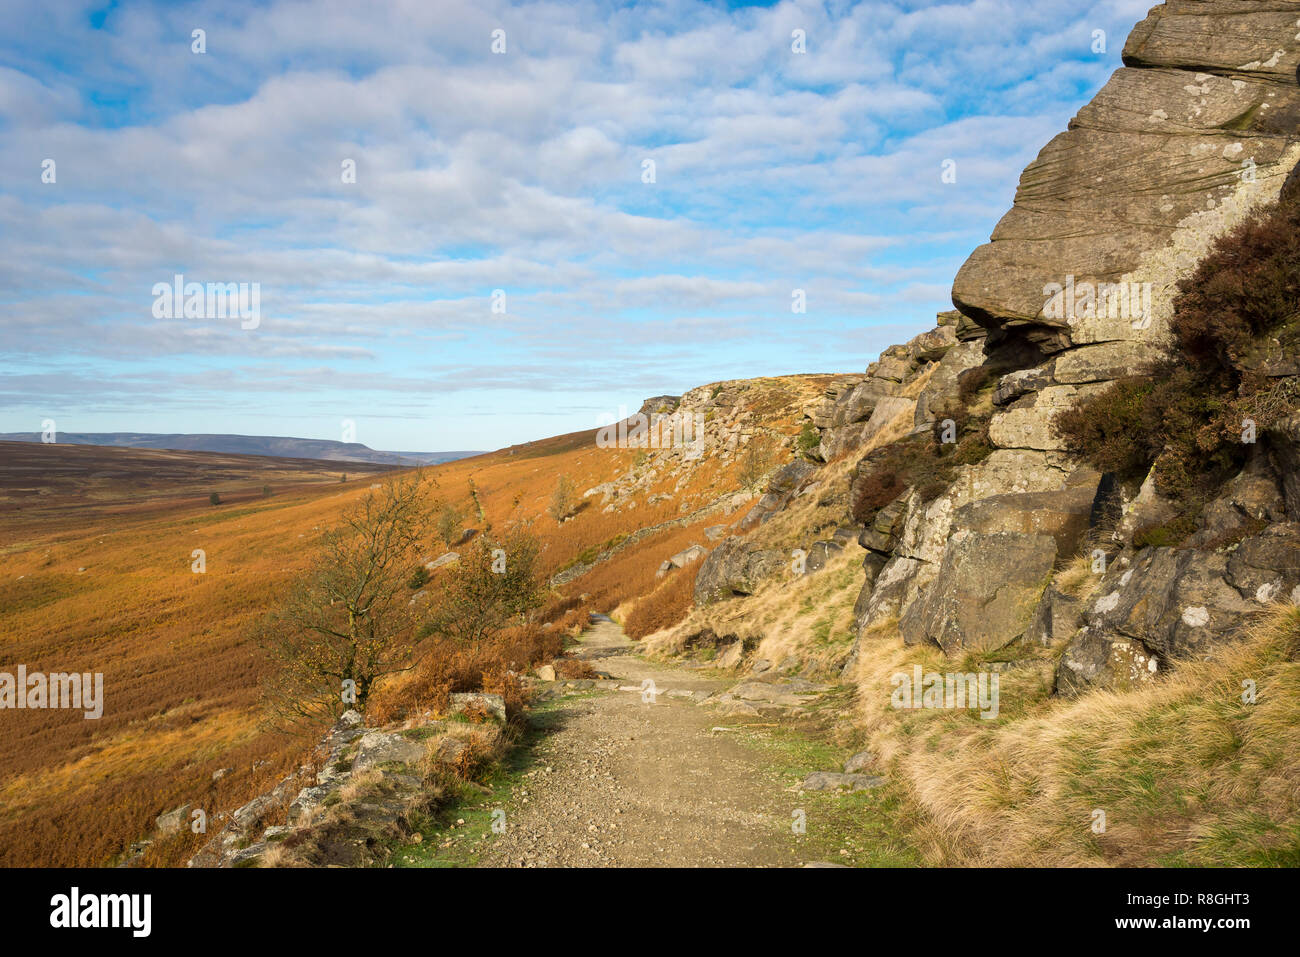 Footpath below High Neb on Stanage Edge in the Peak District national park, England. Autumn colour on the slopes. Stock Photo